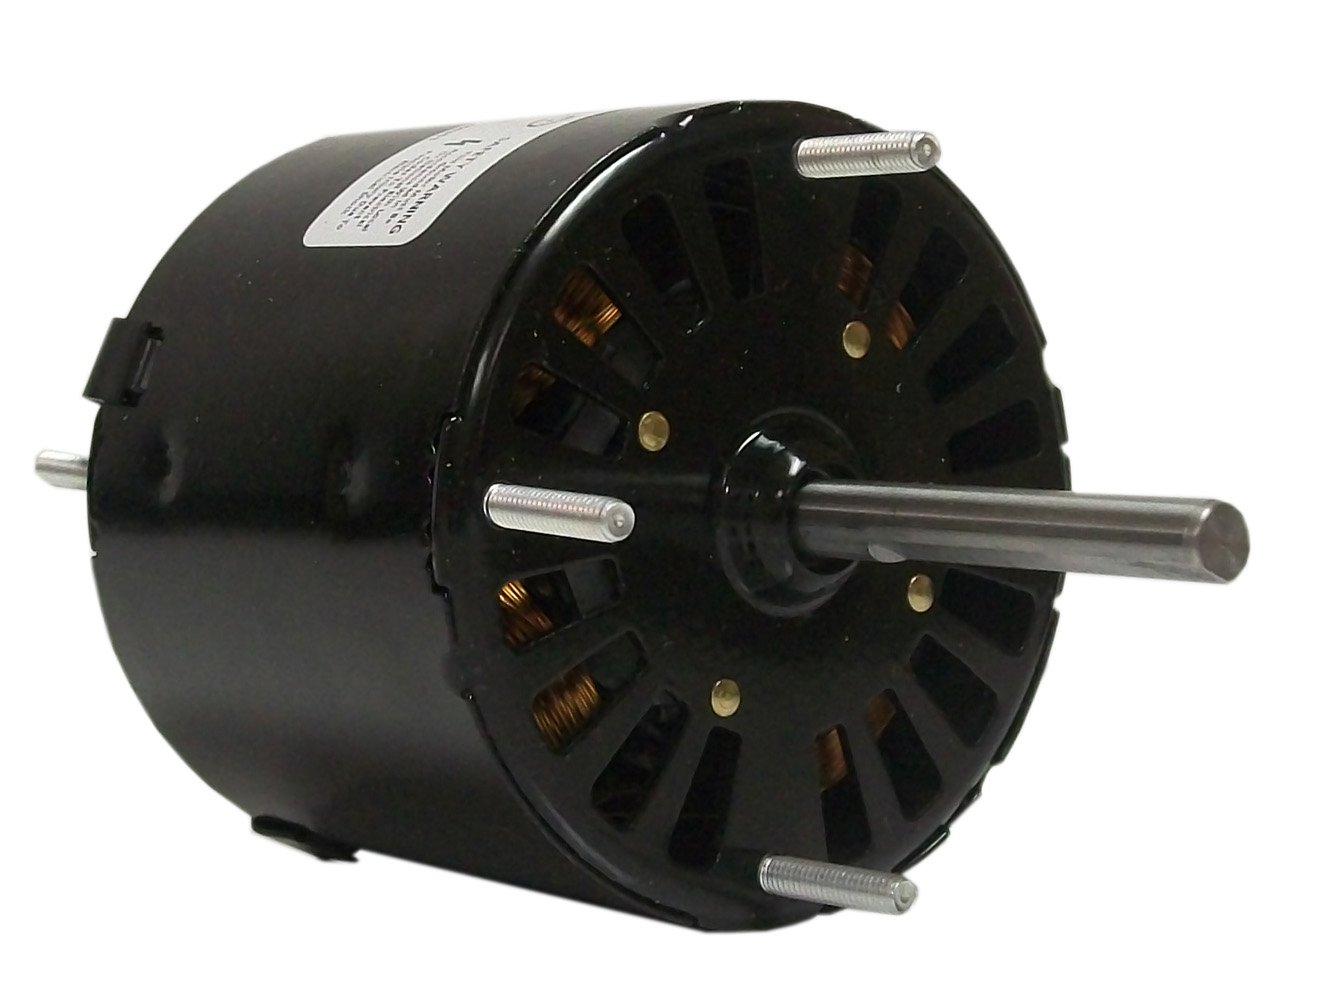 Fasco D189 3.3-Inch General Purpose Motor, 1/20 HP, 230 Volts, 1500 RPM, 1 Speed.9 Amps, OAO Enclosure, CCWSE Rotation, Sleeve Bearing by Fasco (Image #1)